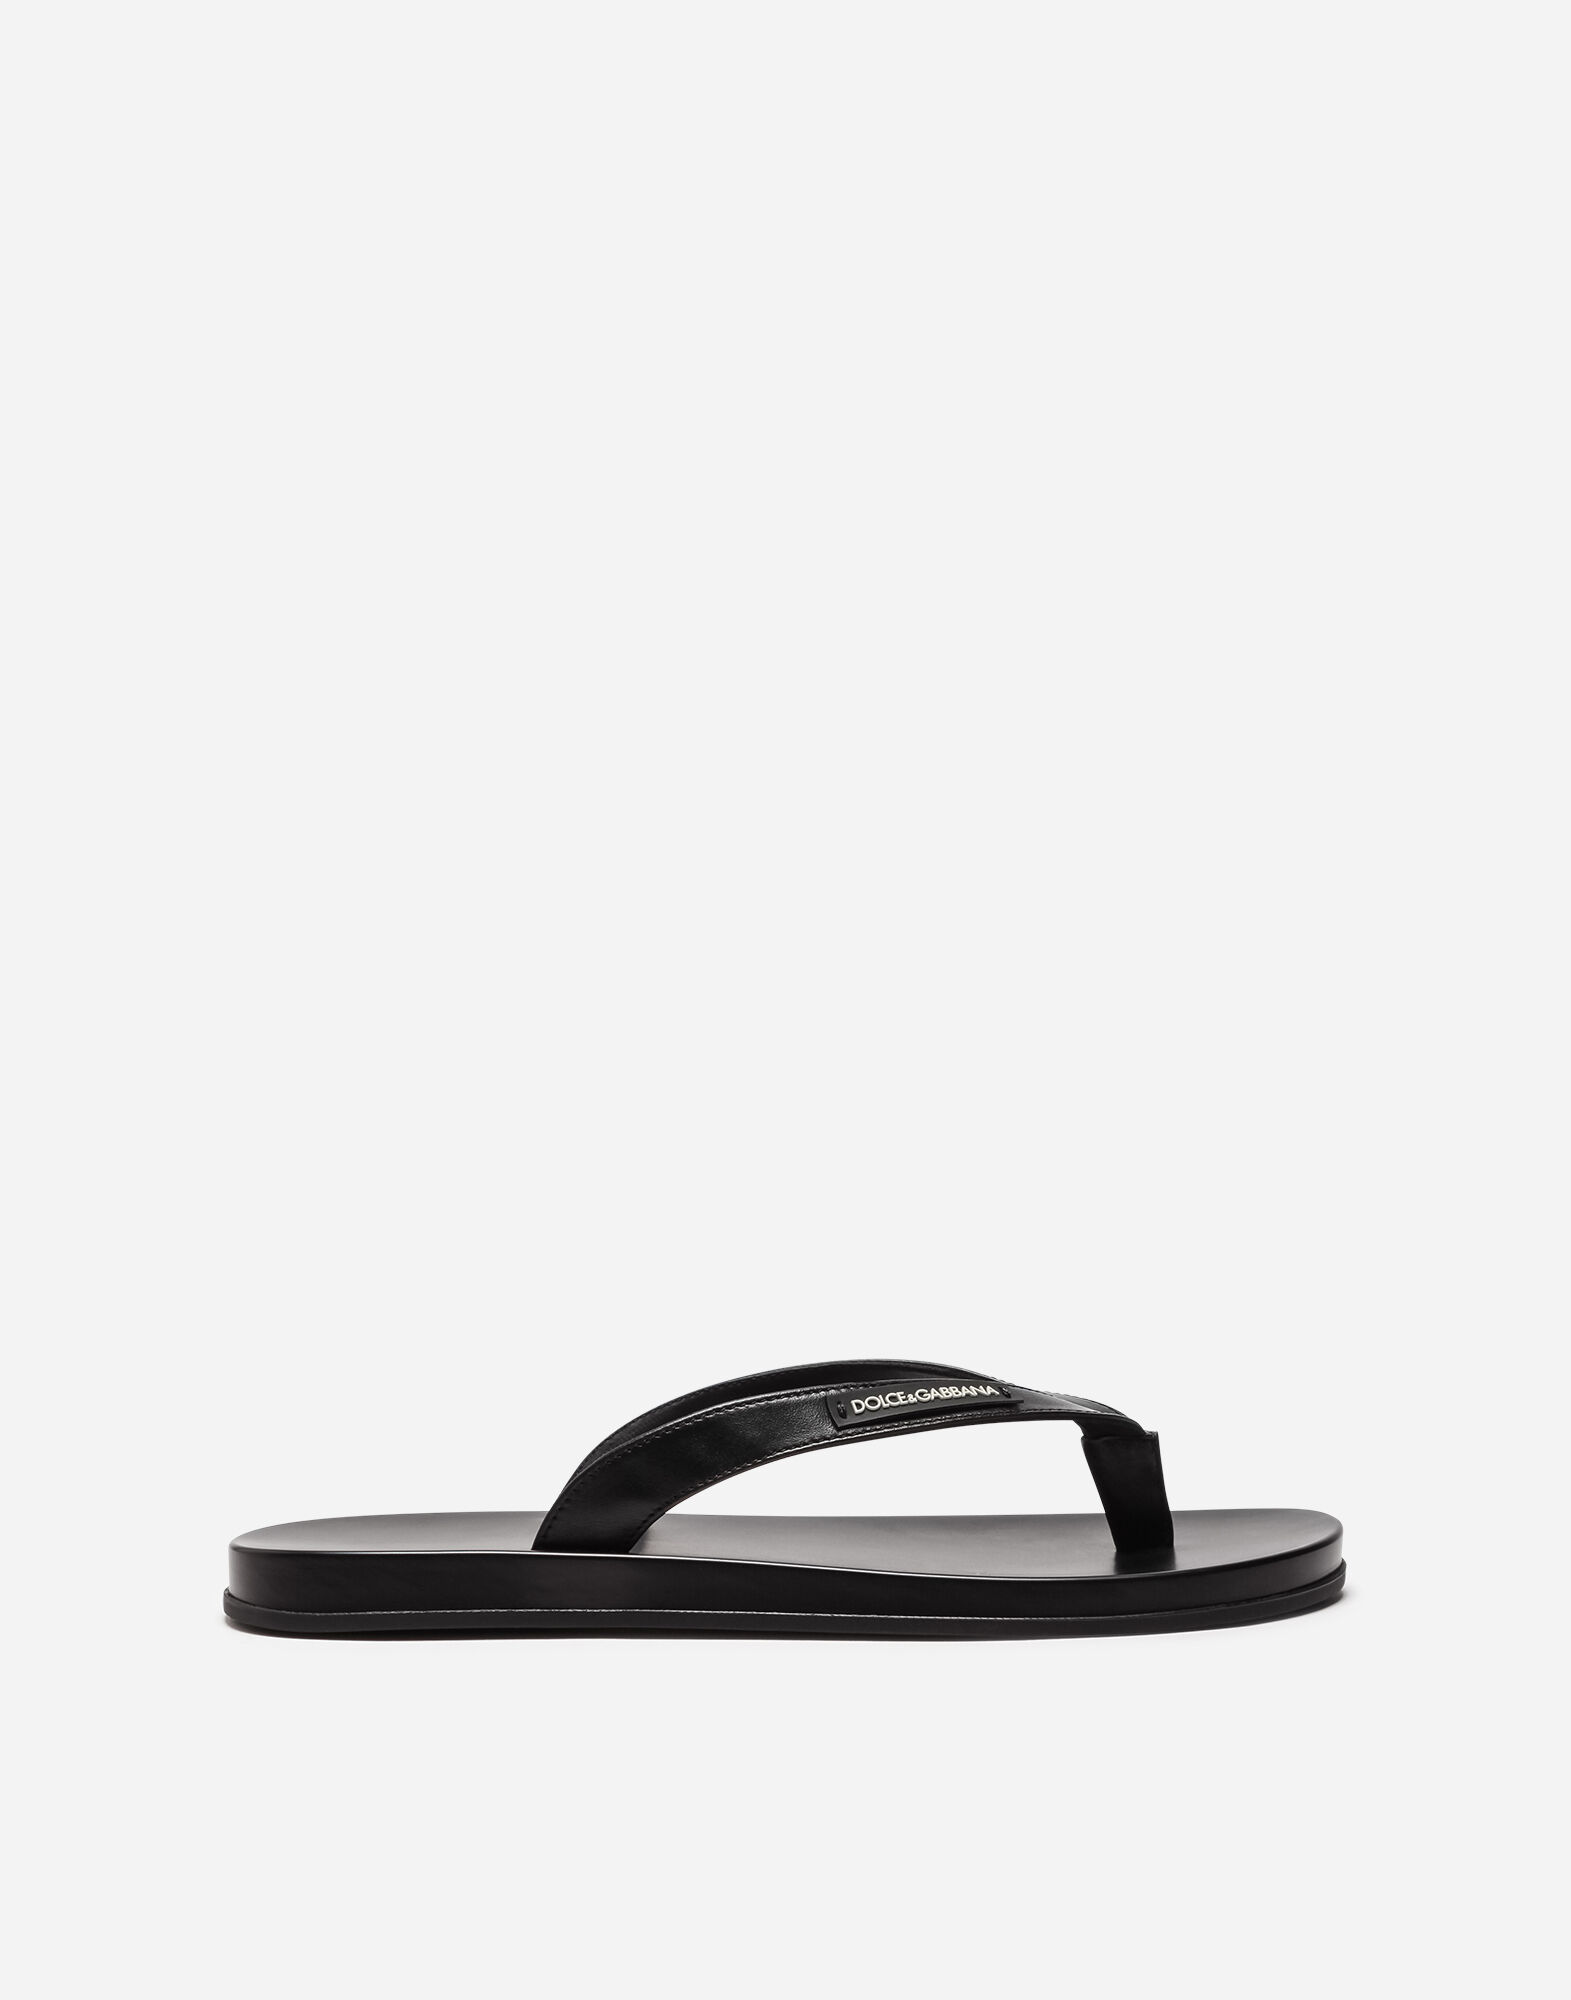 THONG SANDALS IN RUBBER AND NAPPA CALFSKIN